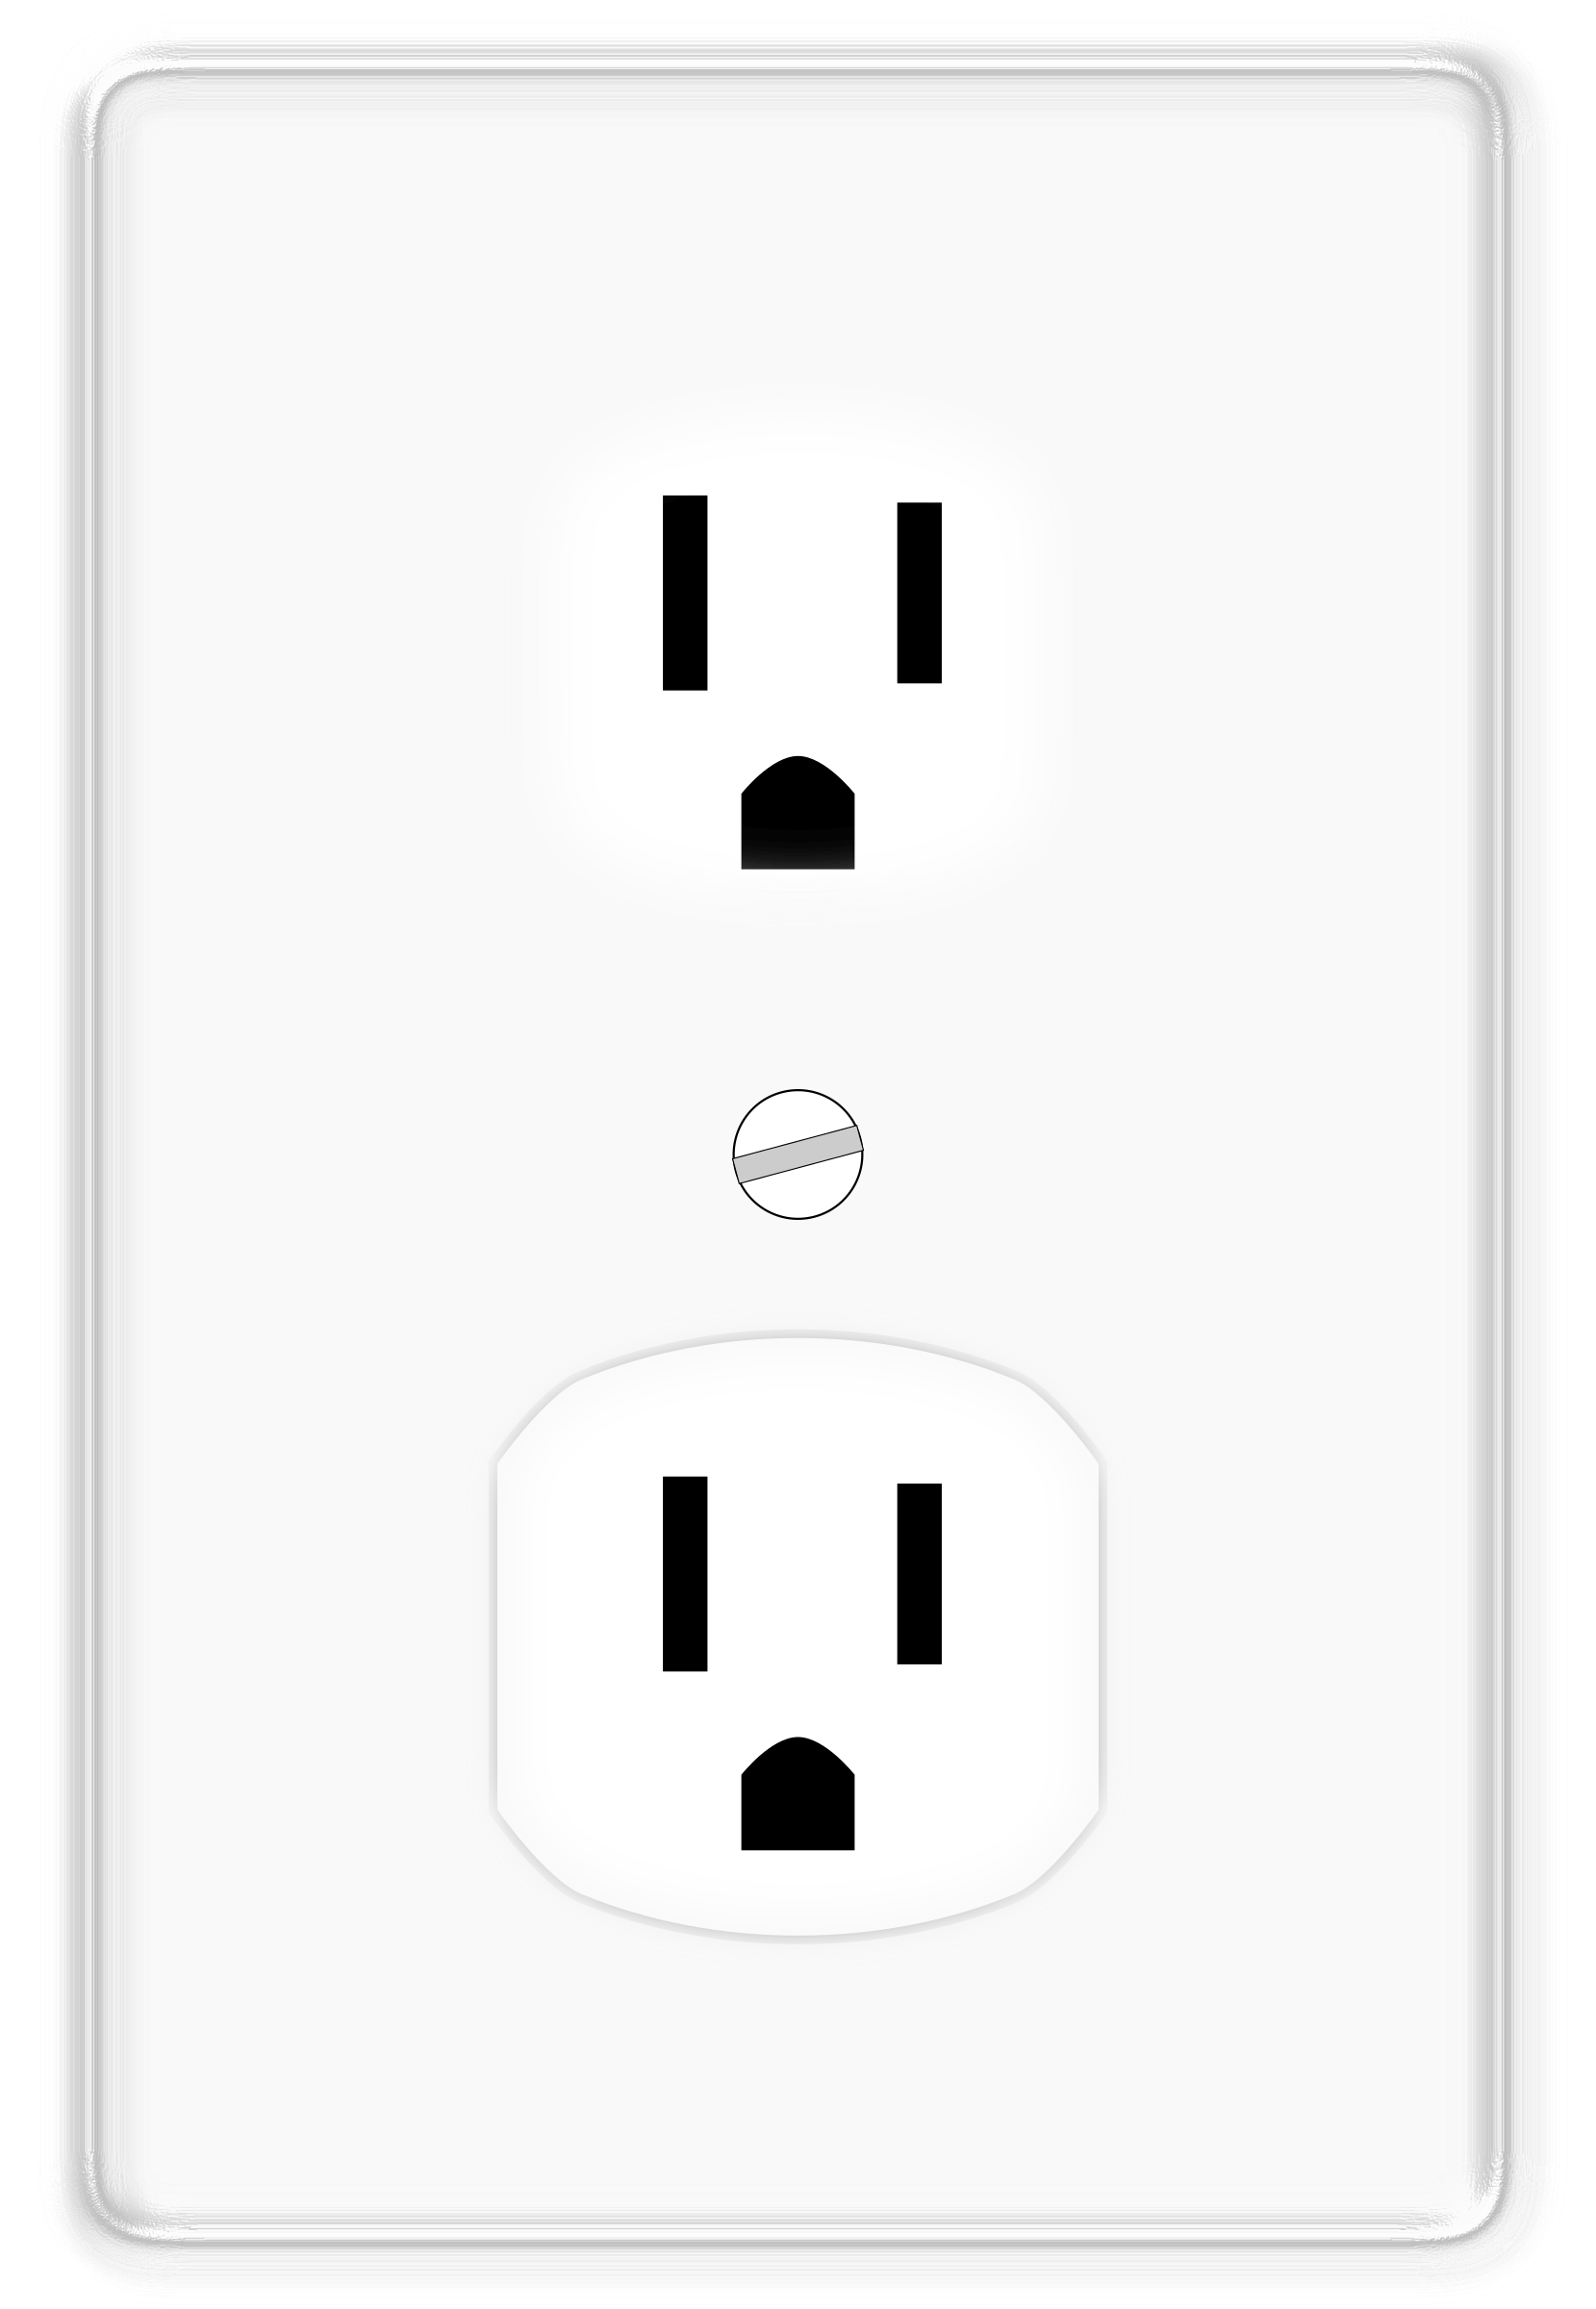 Duplex Socket (USA) by algotruneman